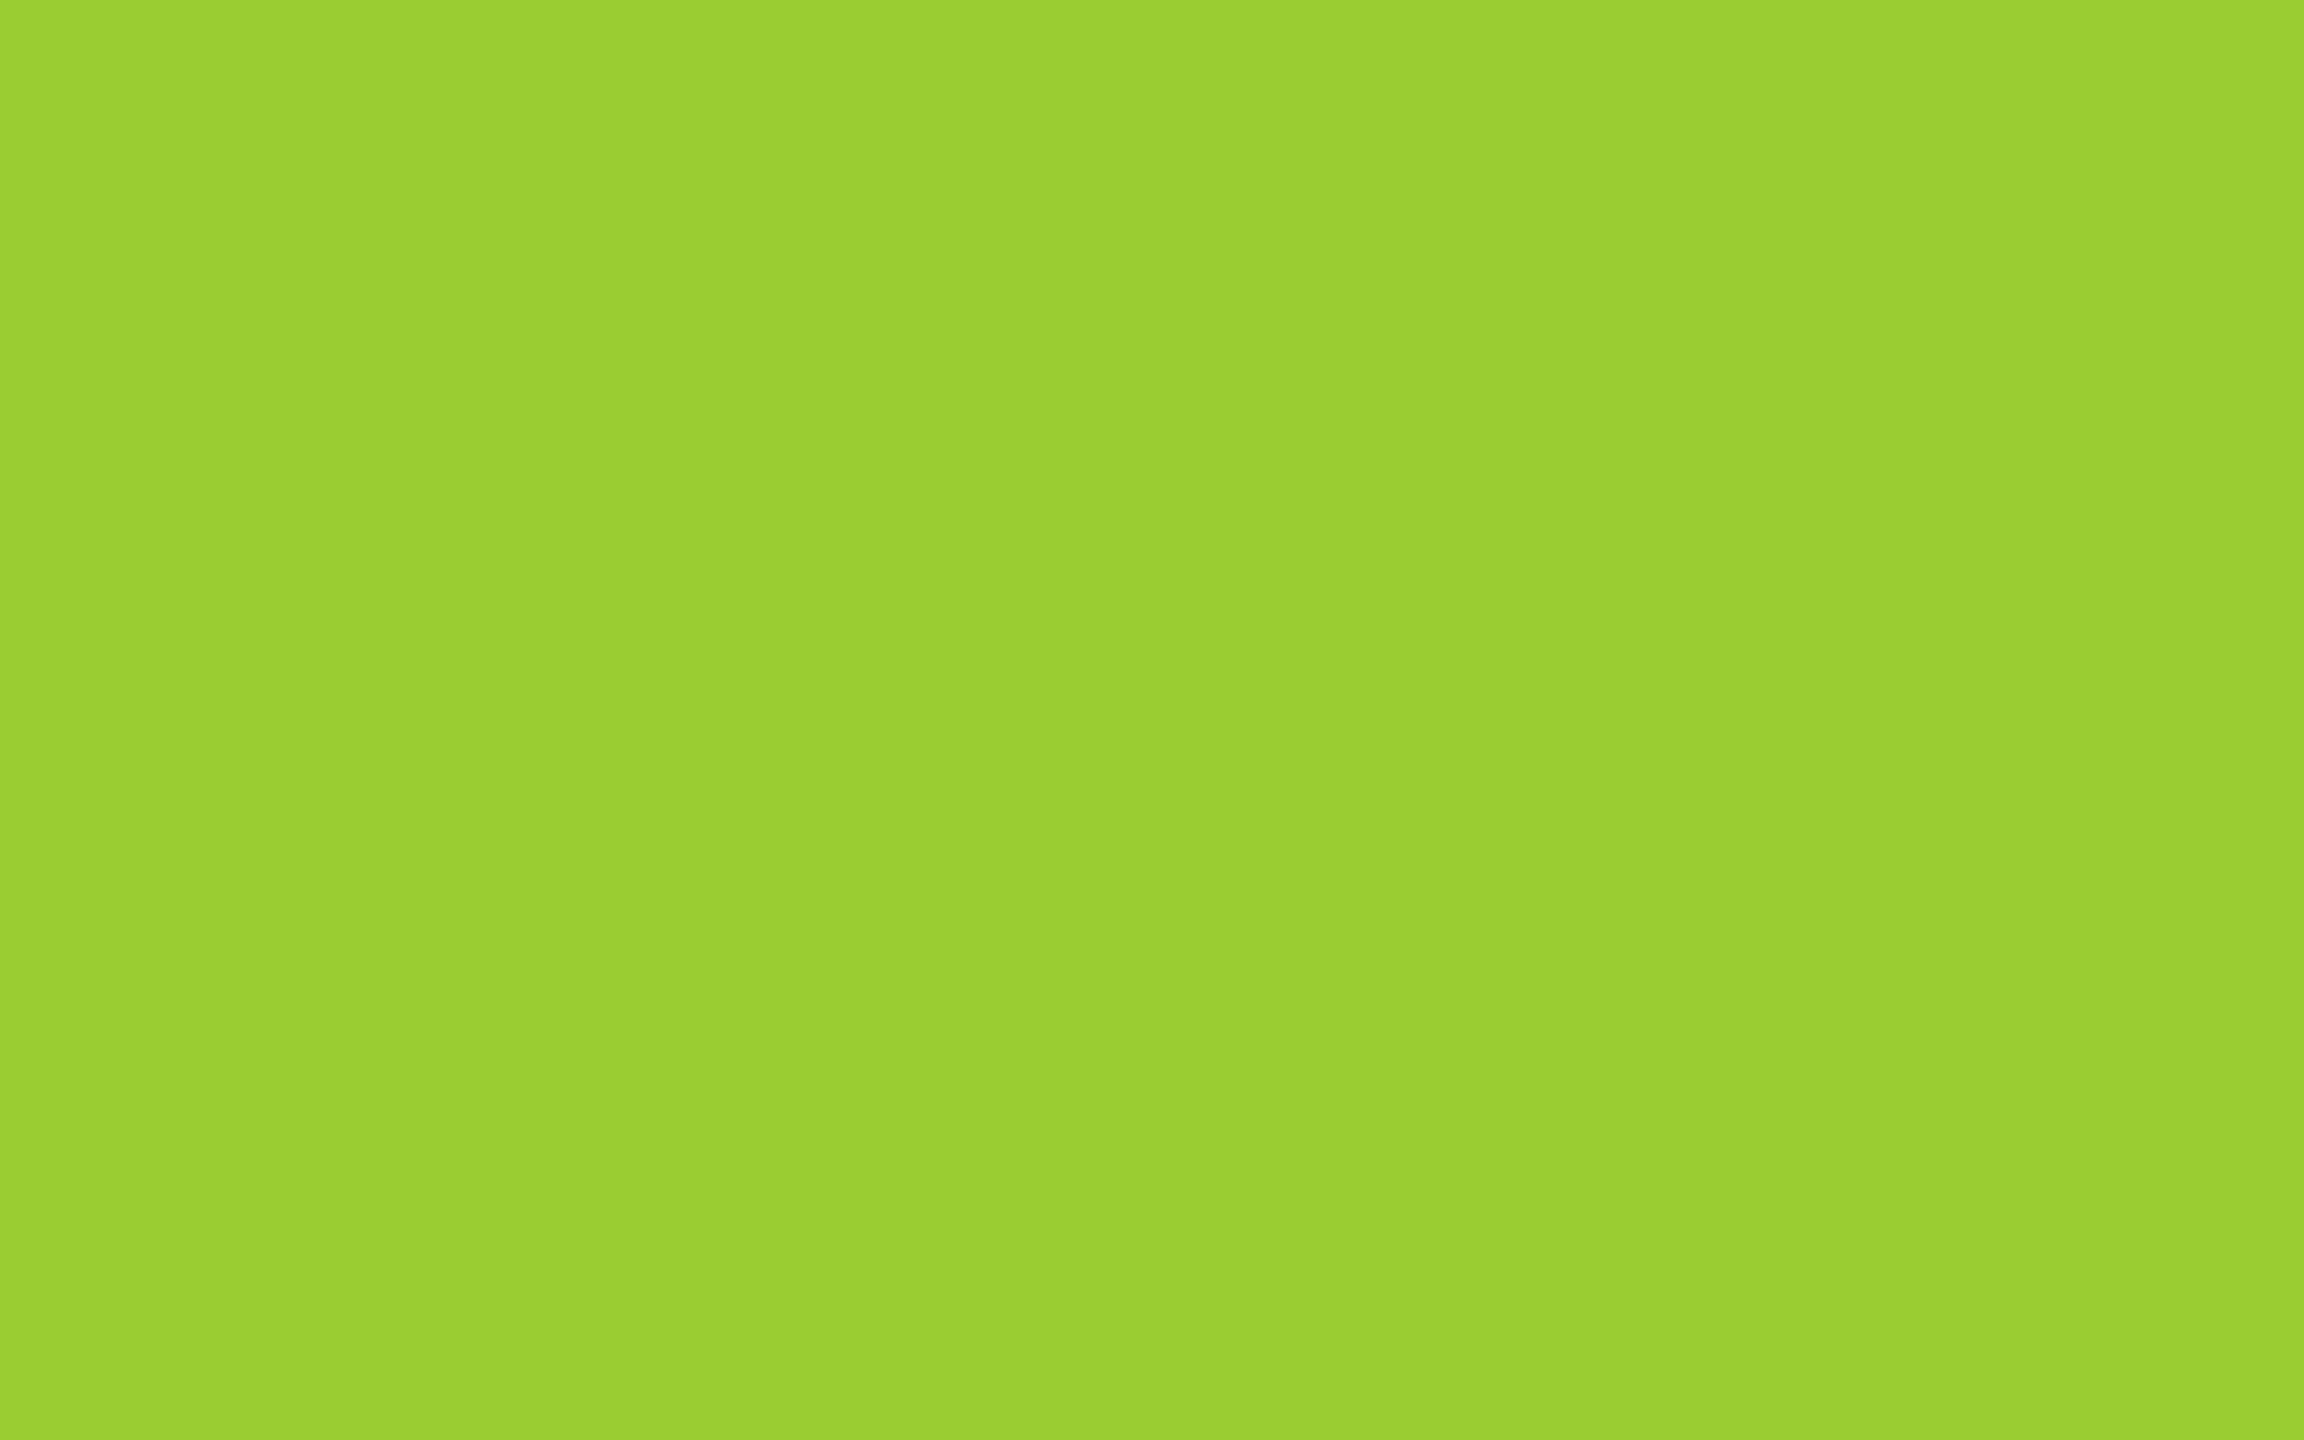 2304x1440 Yellow-green Solid Color Background